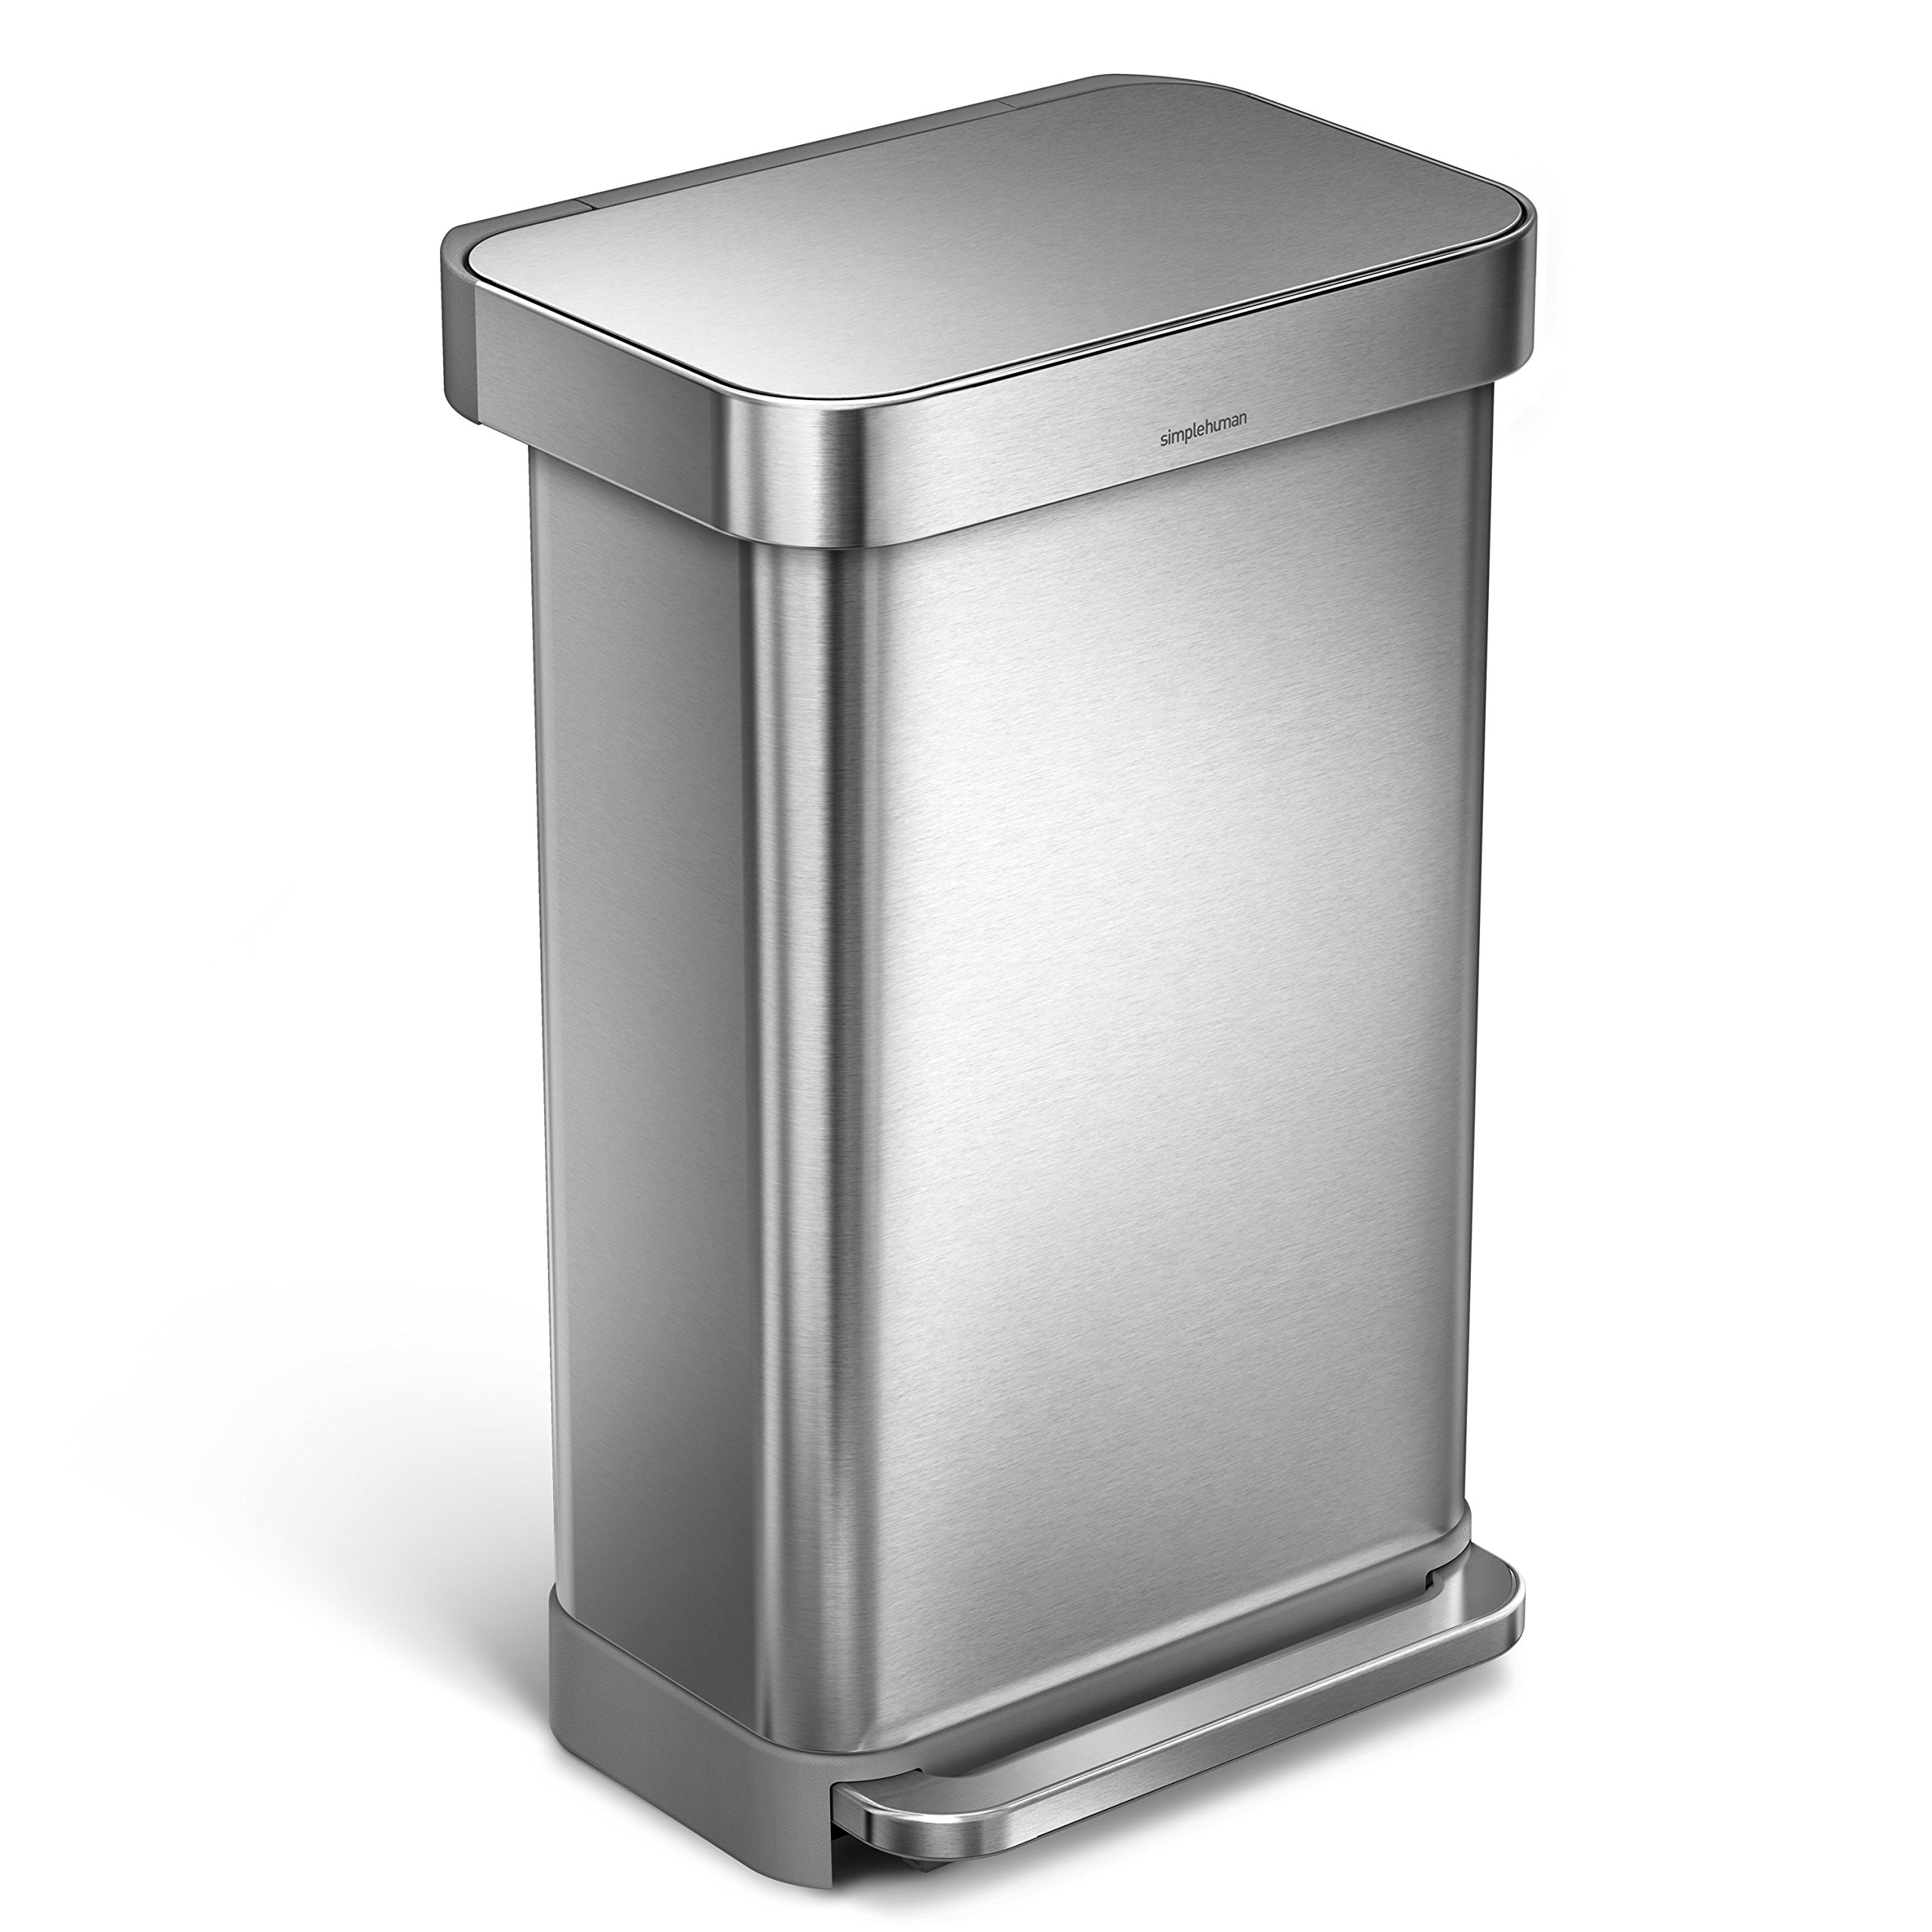 simplehuman 45L Rectangular Step Trash Can with Liner Pocket, Nano-Silver Clear Coat Brushed Stainless Steel, 45 Liter / 11.9 Gallon by simplehuman